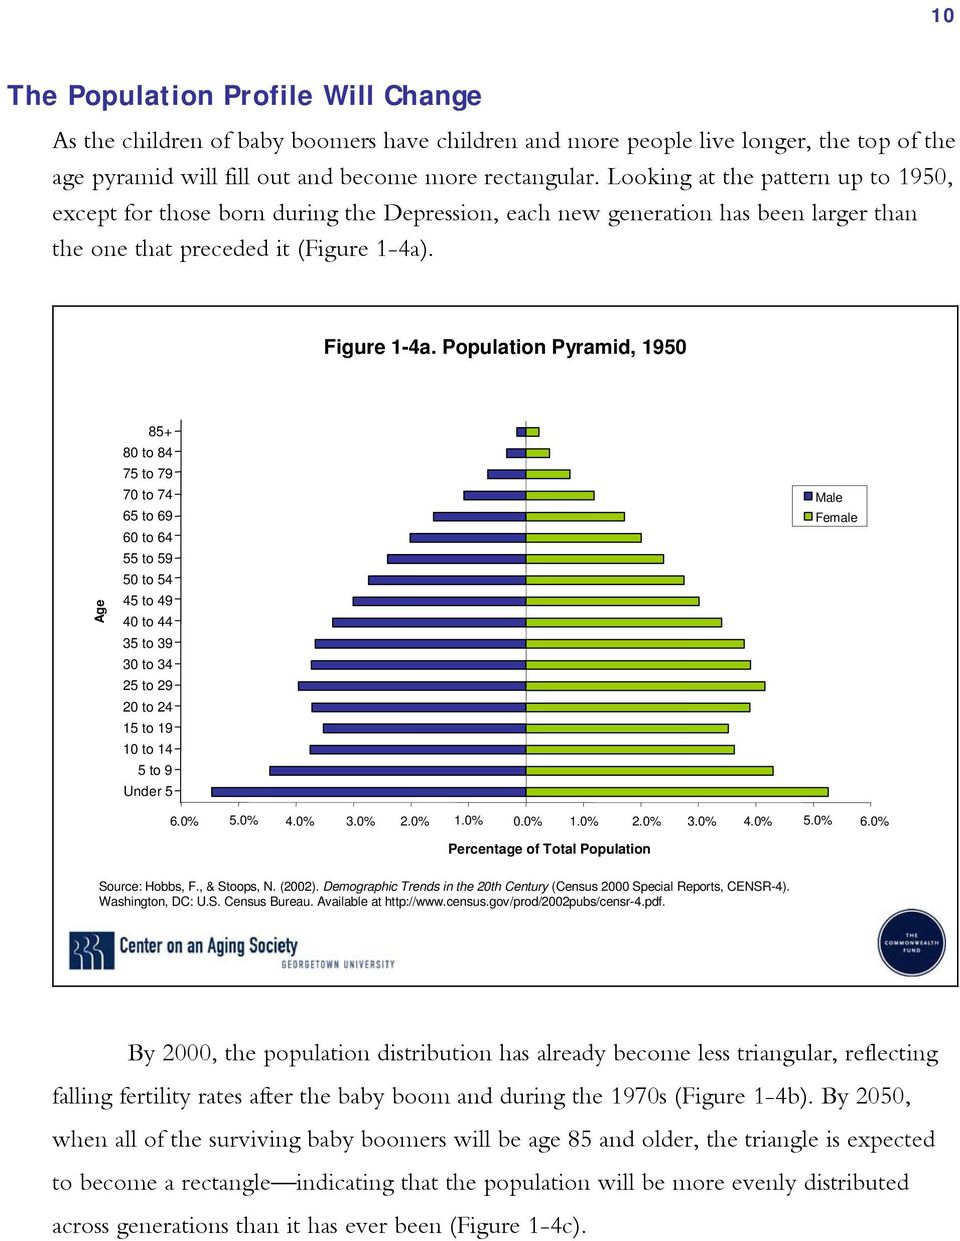 Population Pyramid, 1950 Age 85+ 80 to 84 75 to 79 70 to 74 65 to 69 60 to 64 55 to 59 50 to 54 45 to 49 40 to 44 35 to 39 30 to 34 25 to 29 20 to 24 15 to 19 10 to 14 5 to 9 Under 5 Male Female 6.